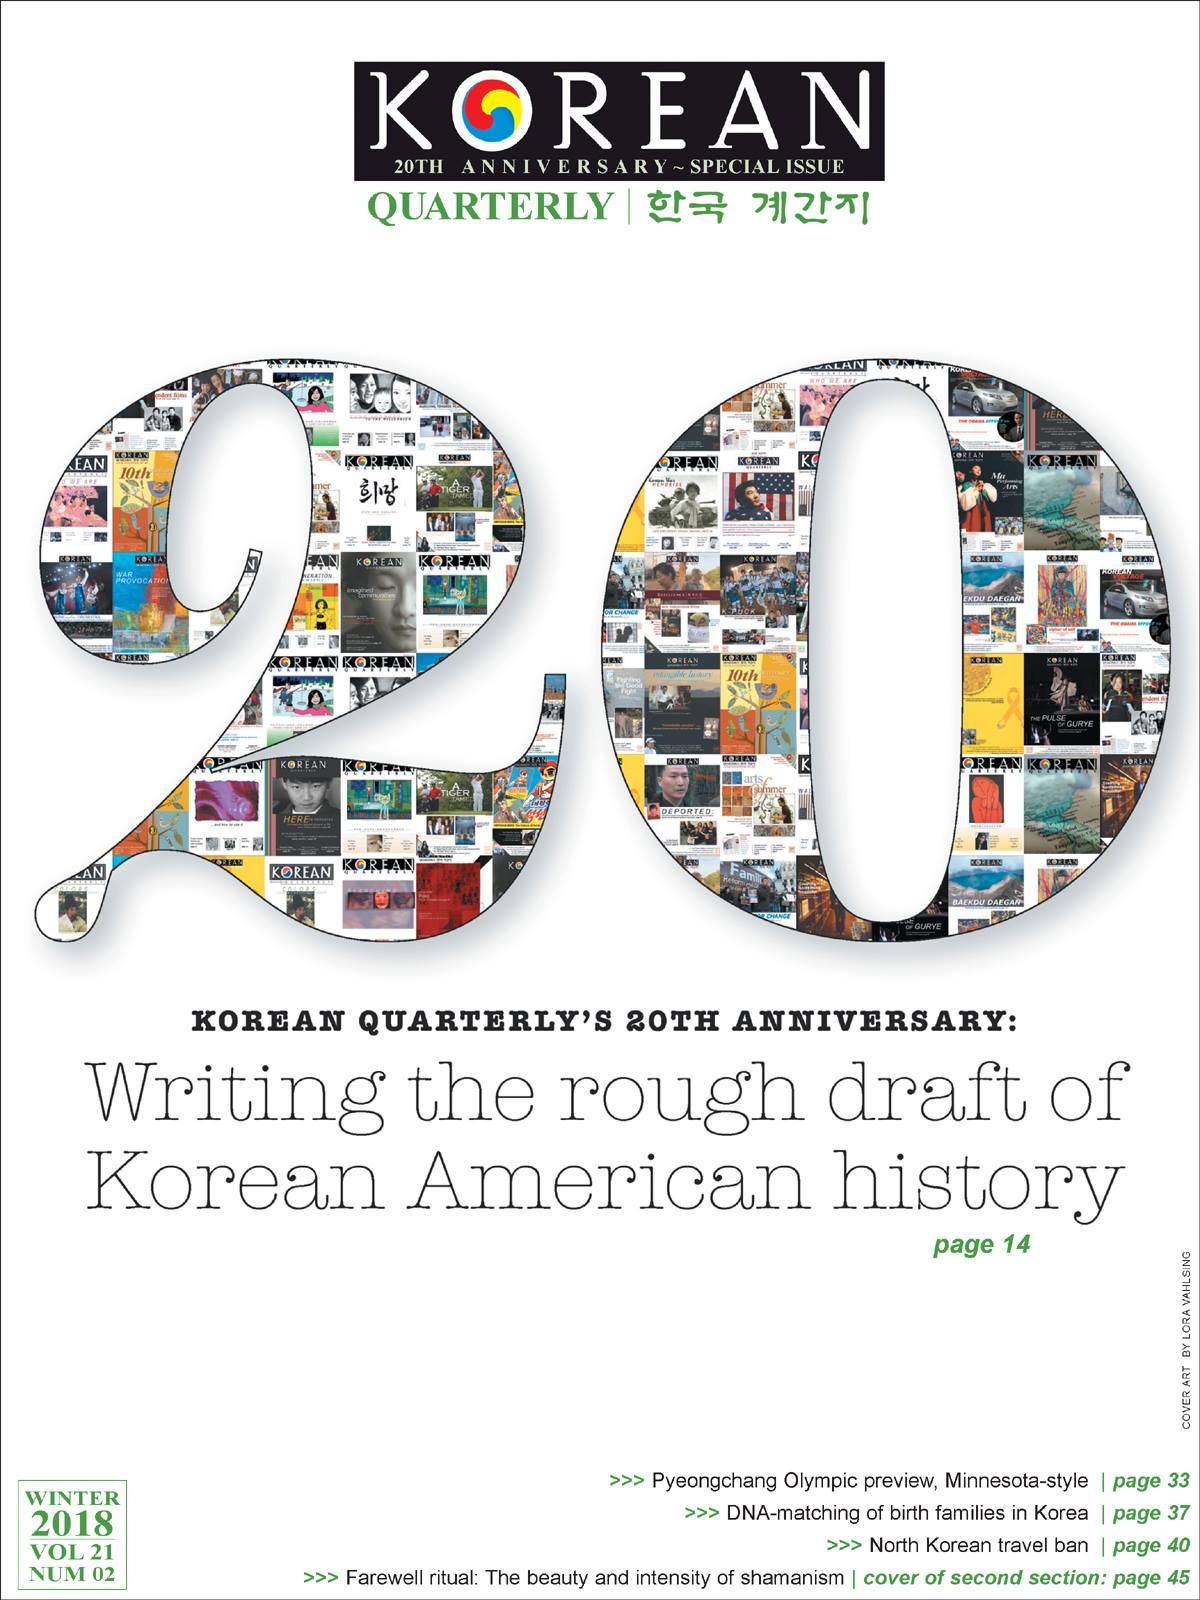 Korean Quarterly - In the Winter of 2018 Lora had the privilege of designing this cover for Korean Quarterly's 20th anniversary!